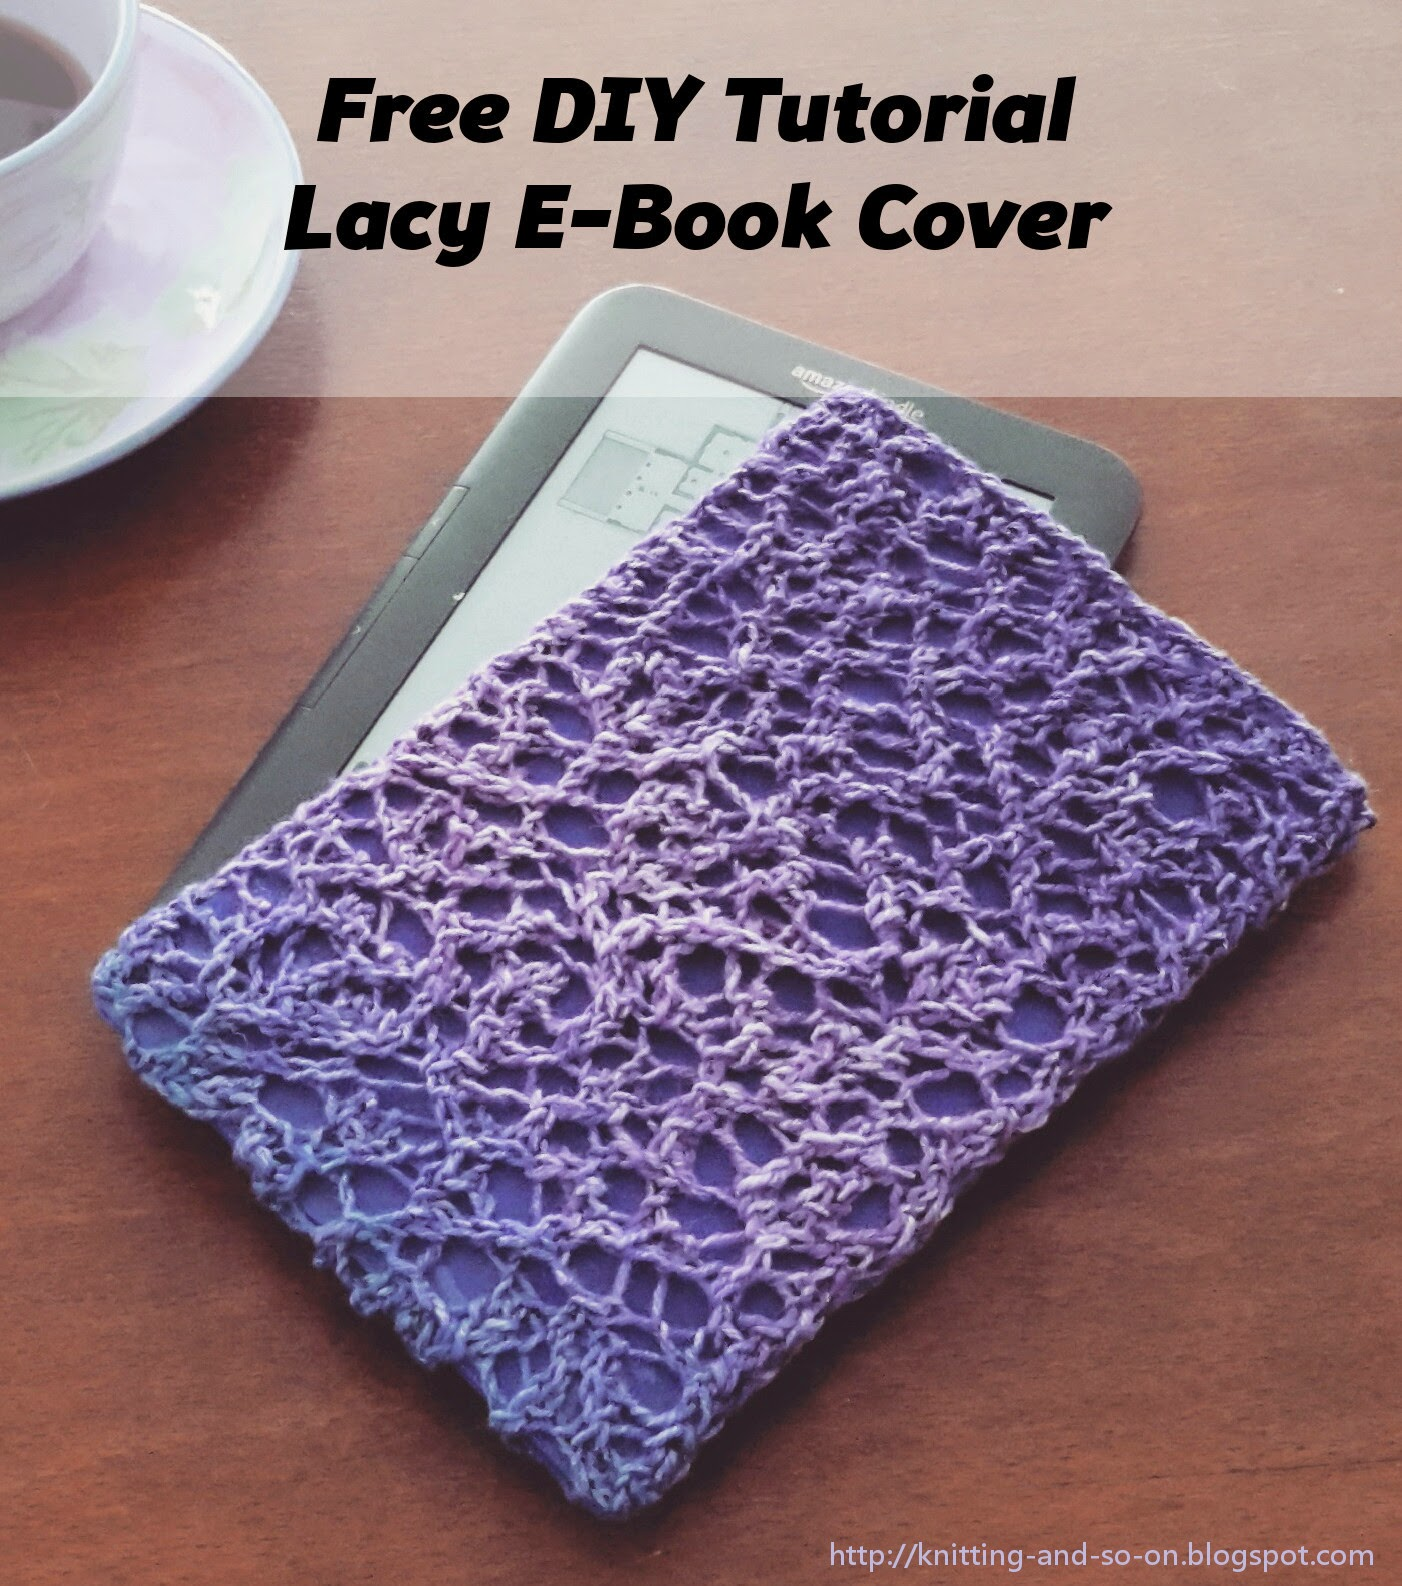 Free DIY Tutorial: Lacy E-Book Sleeve